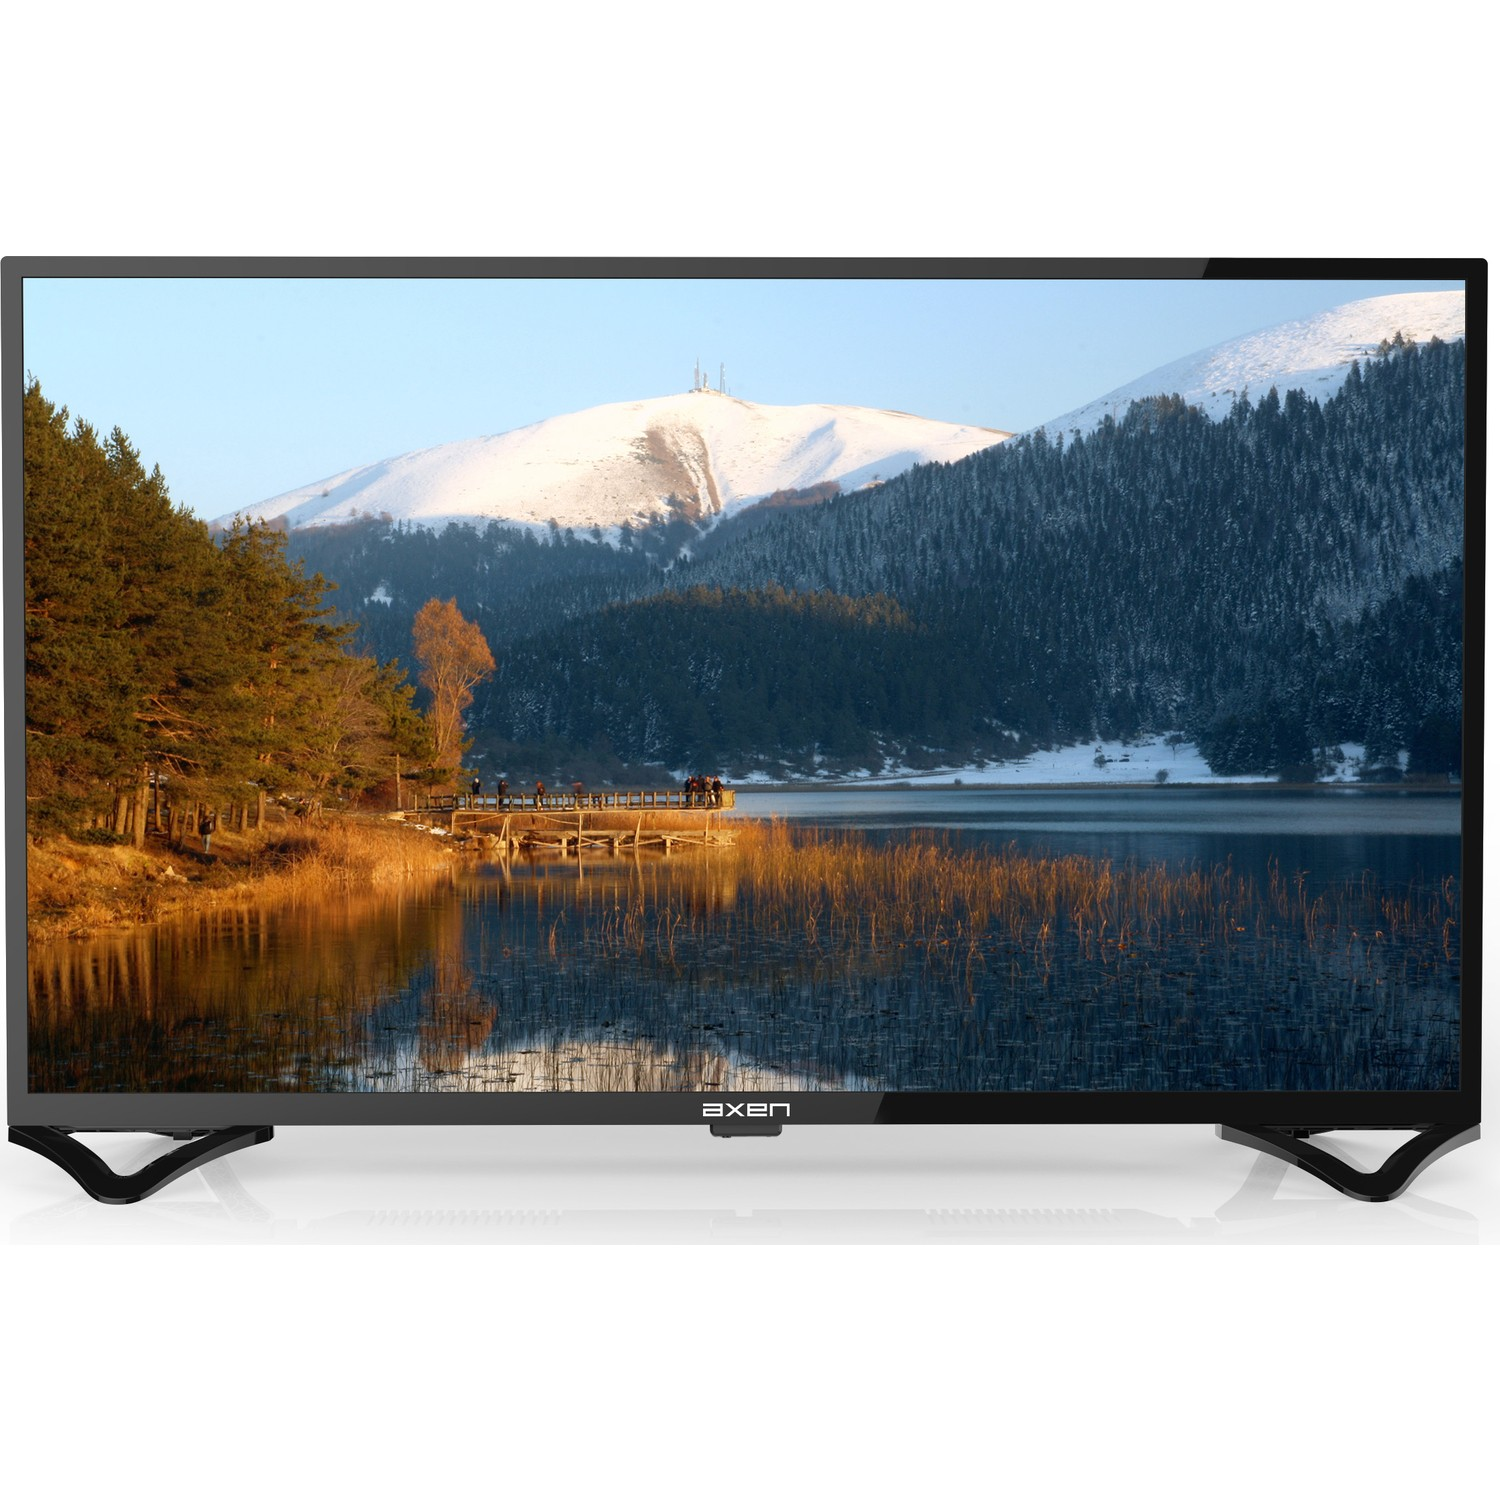 "AXEN AX40DAB010 40"" FULL HD LED UYDU ALICILI TV"